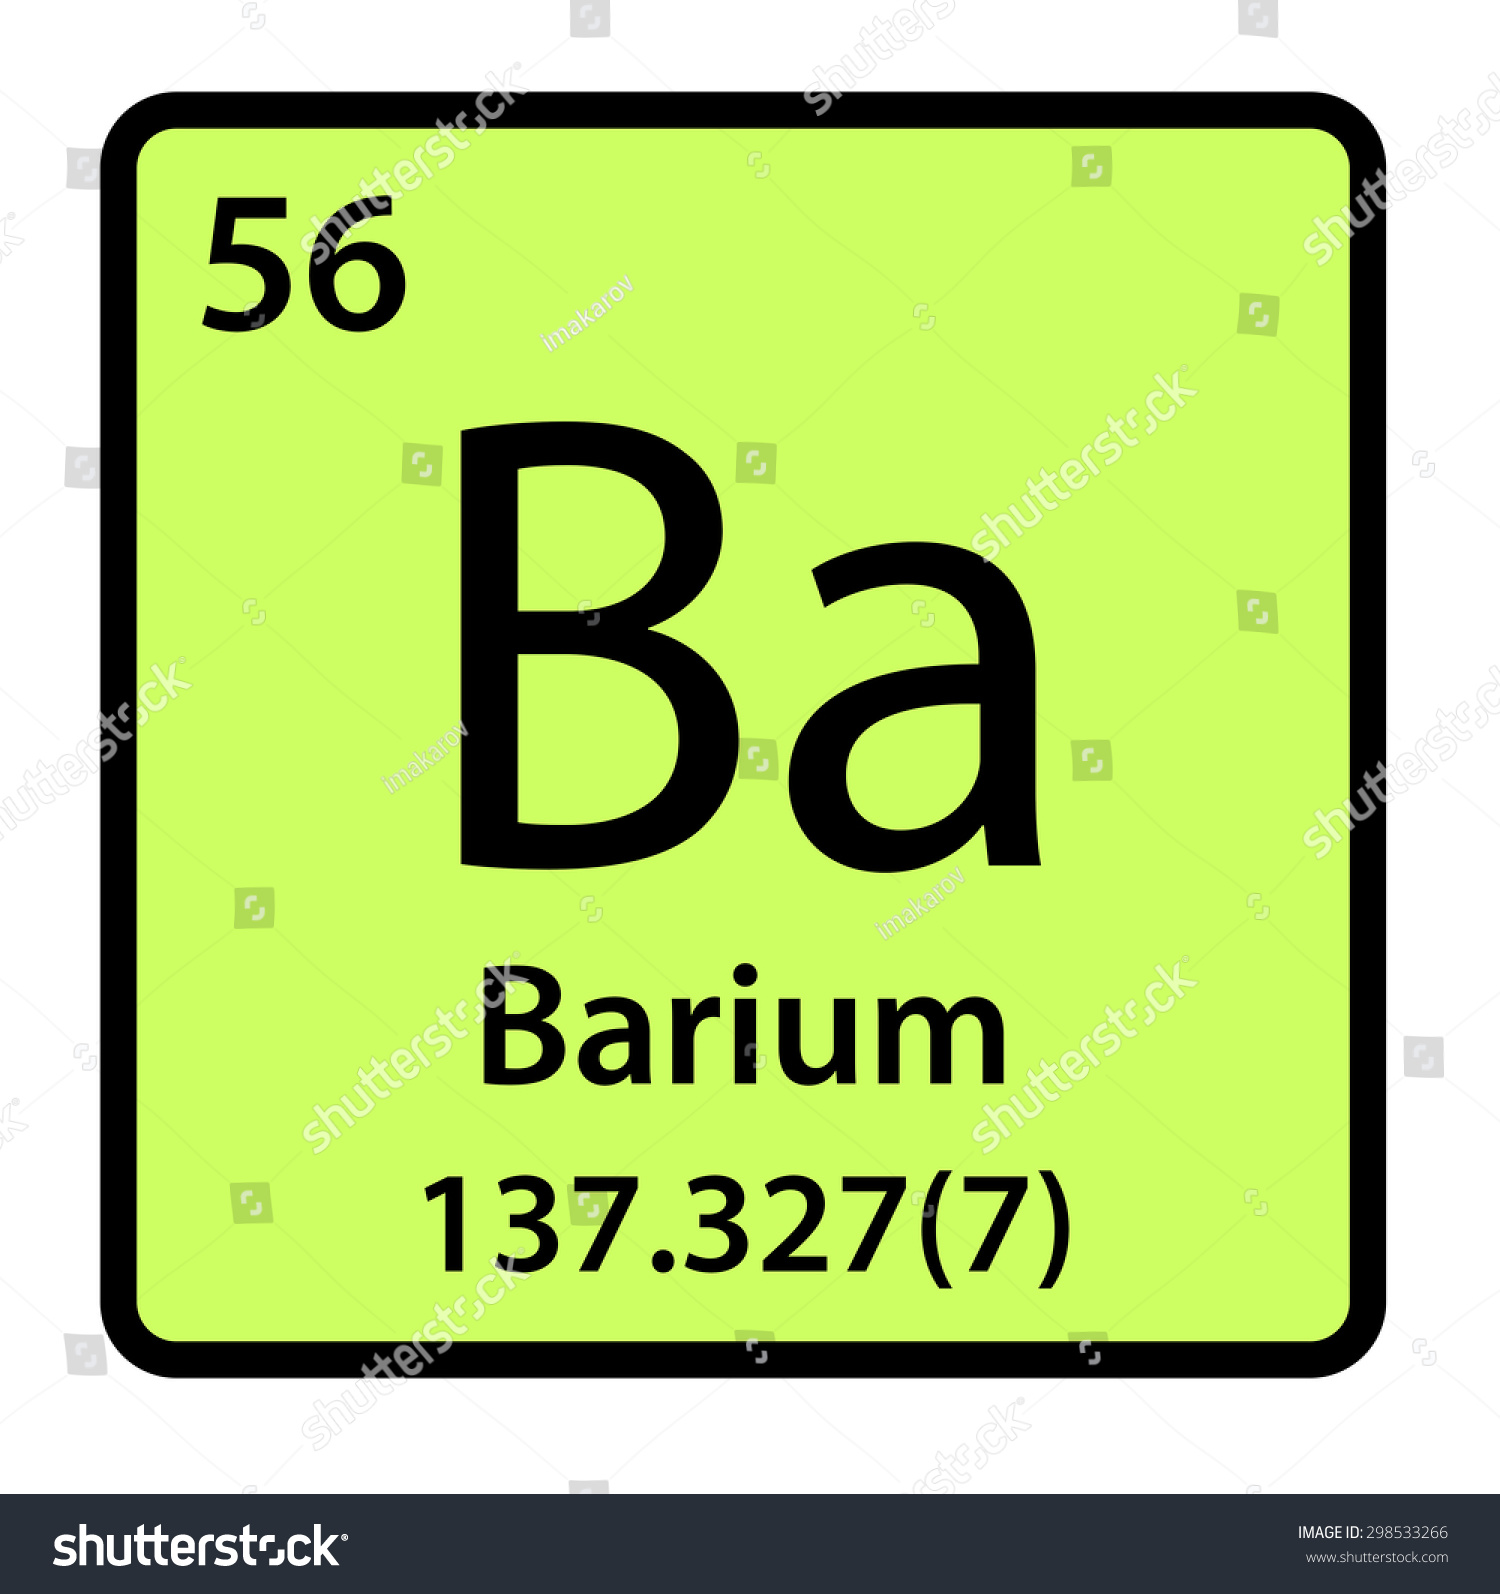 Element barium periodic table stock illustration 298533266 element barium of the periodic table gamestrikefo Gallery